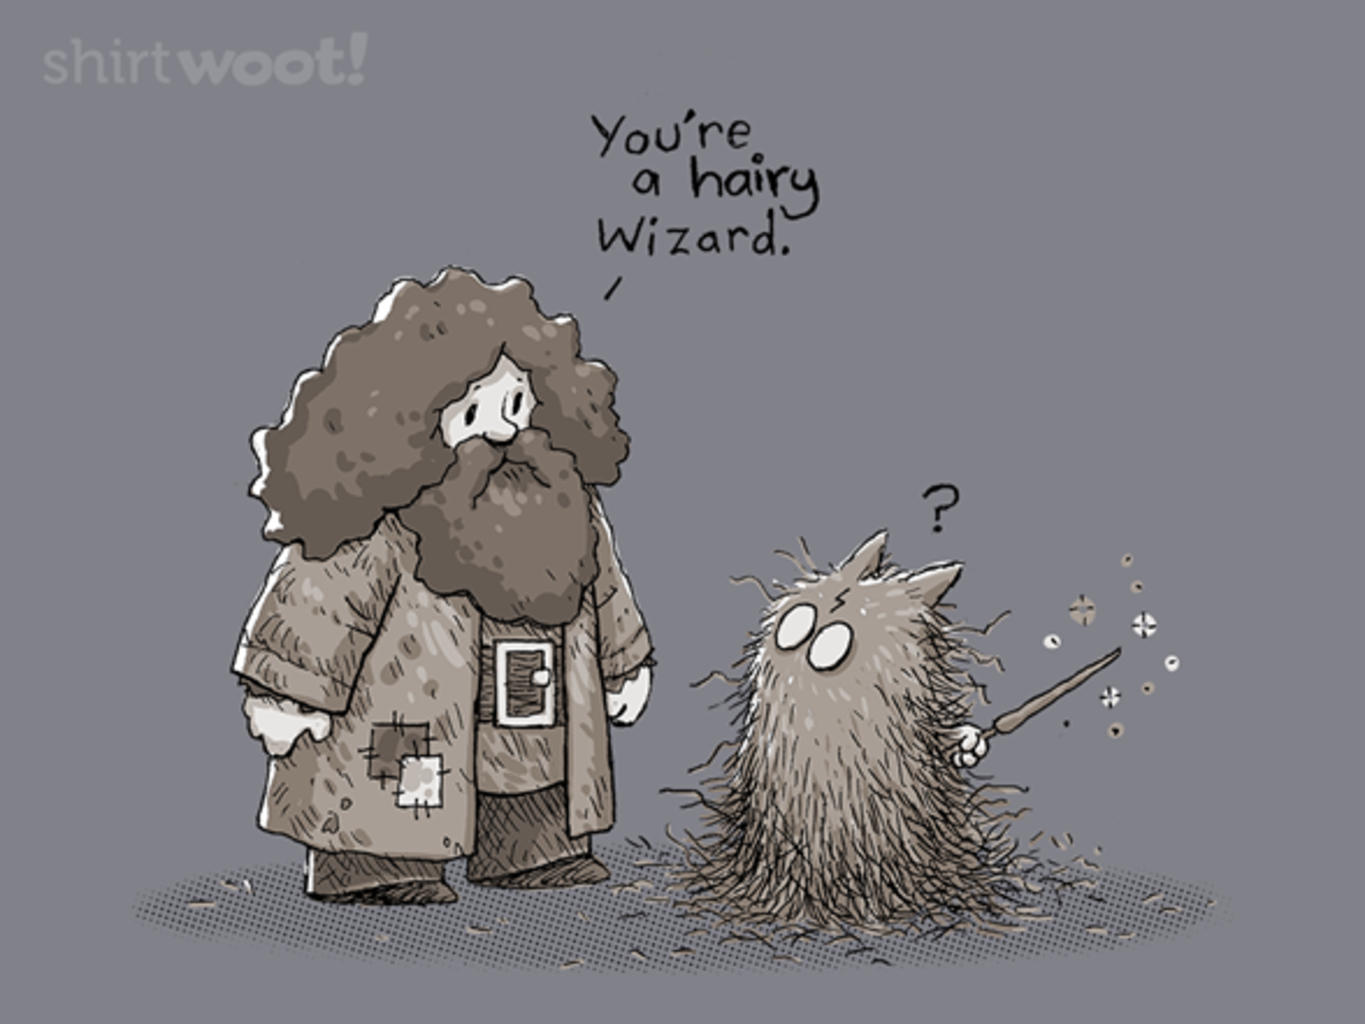 Woot!: You're A Hairy Wizard